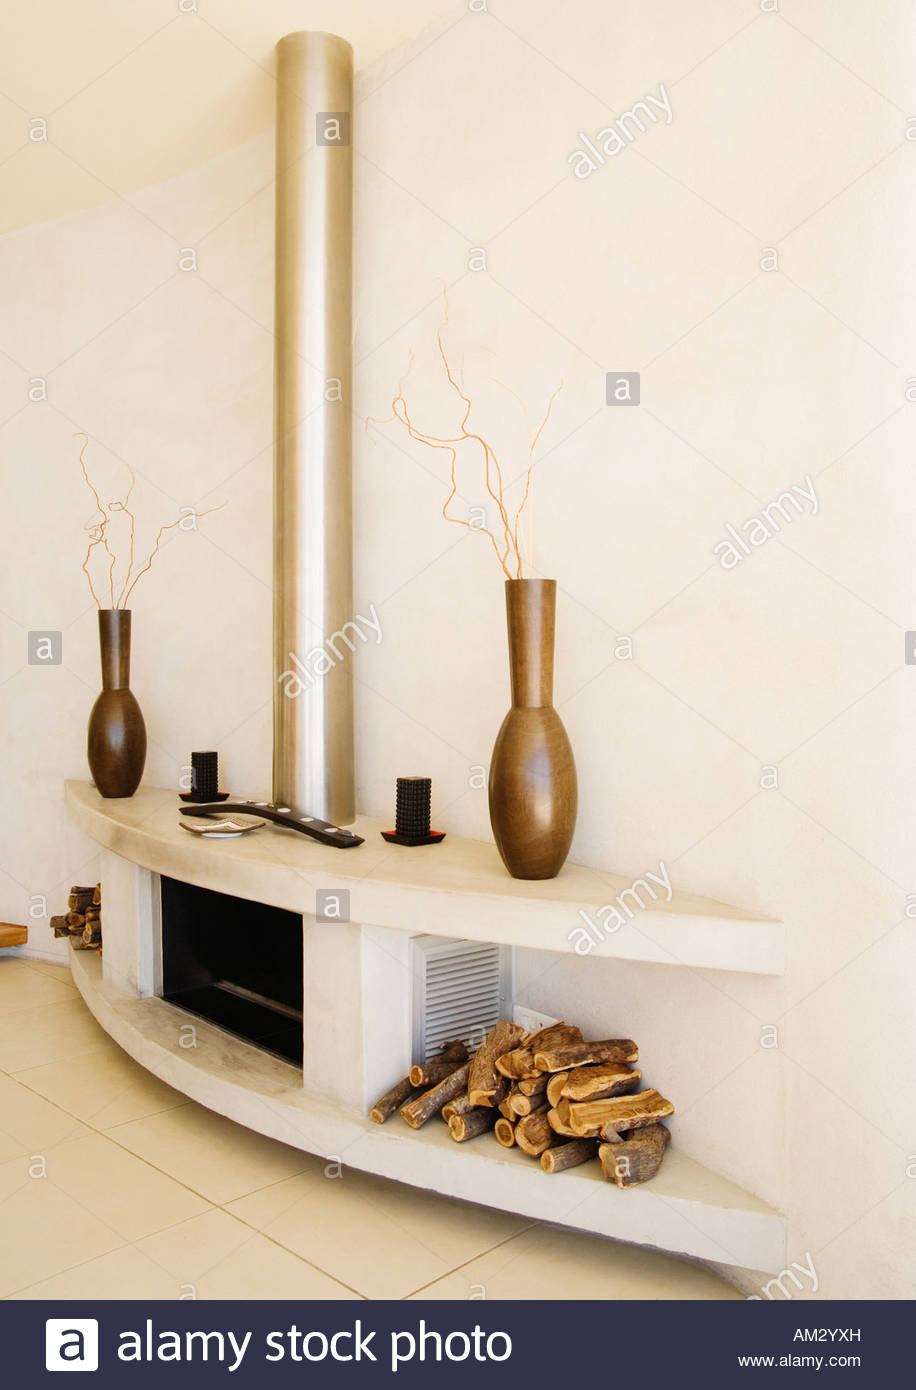 Modern fireplace with wood piles on each side - Stock Image